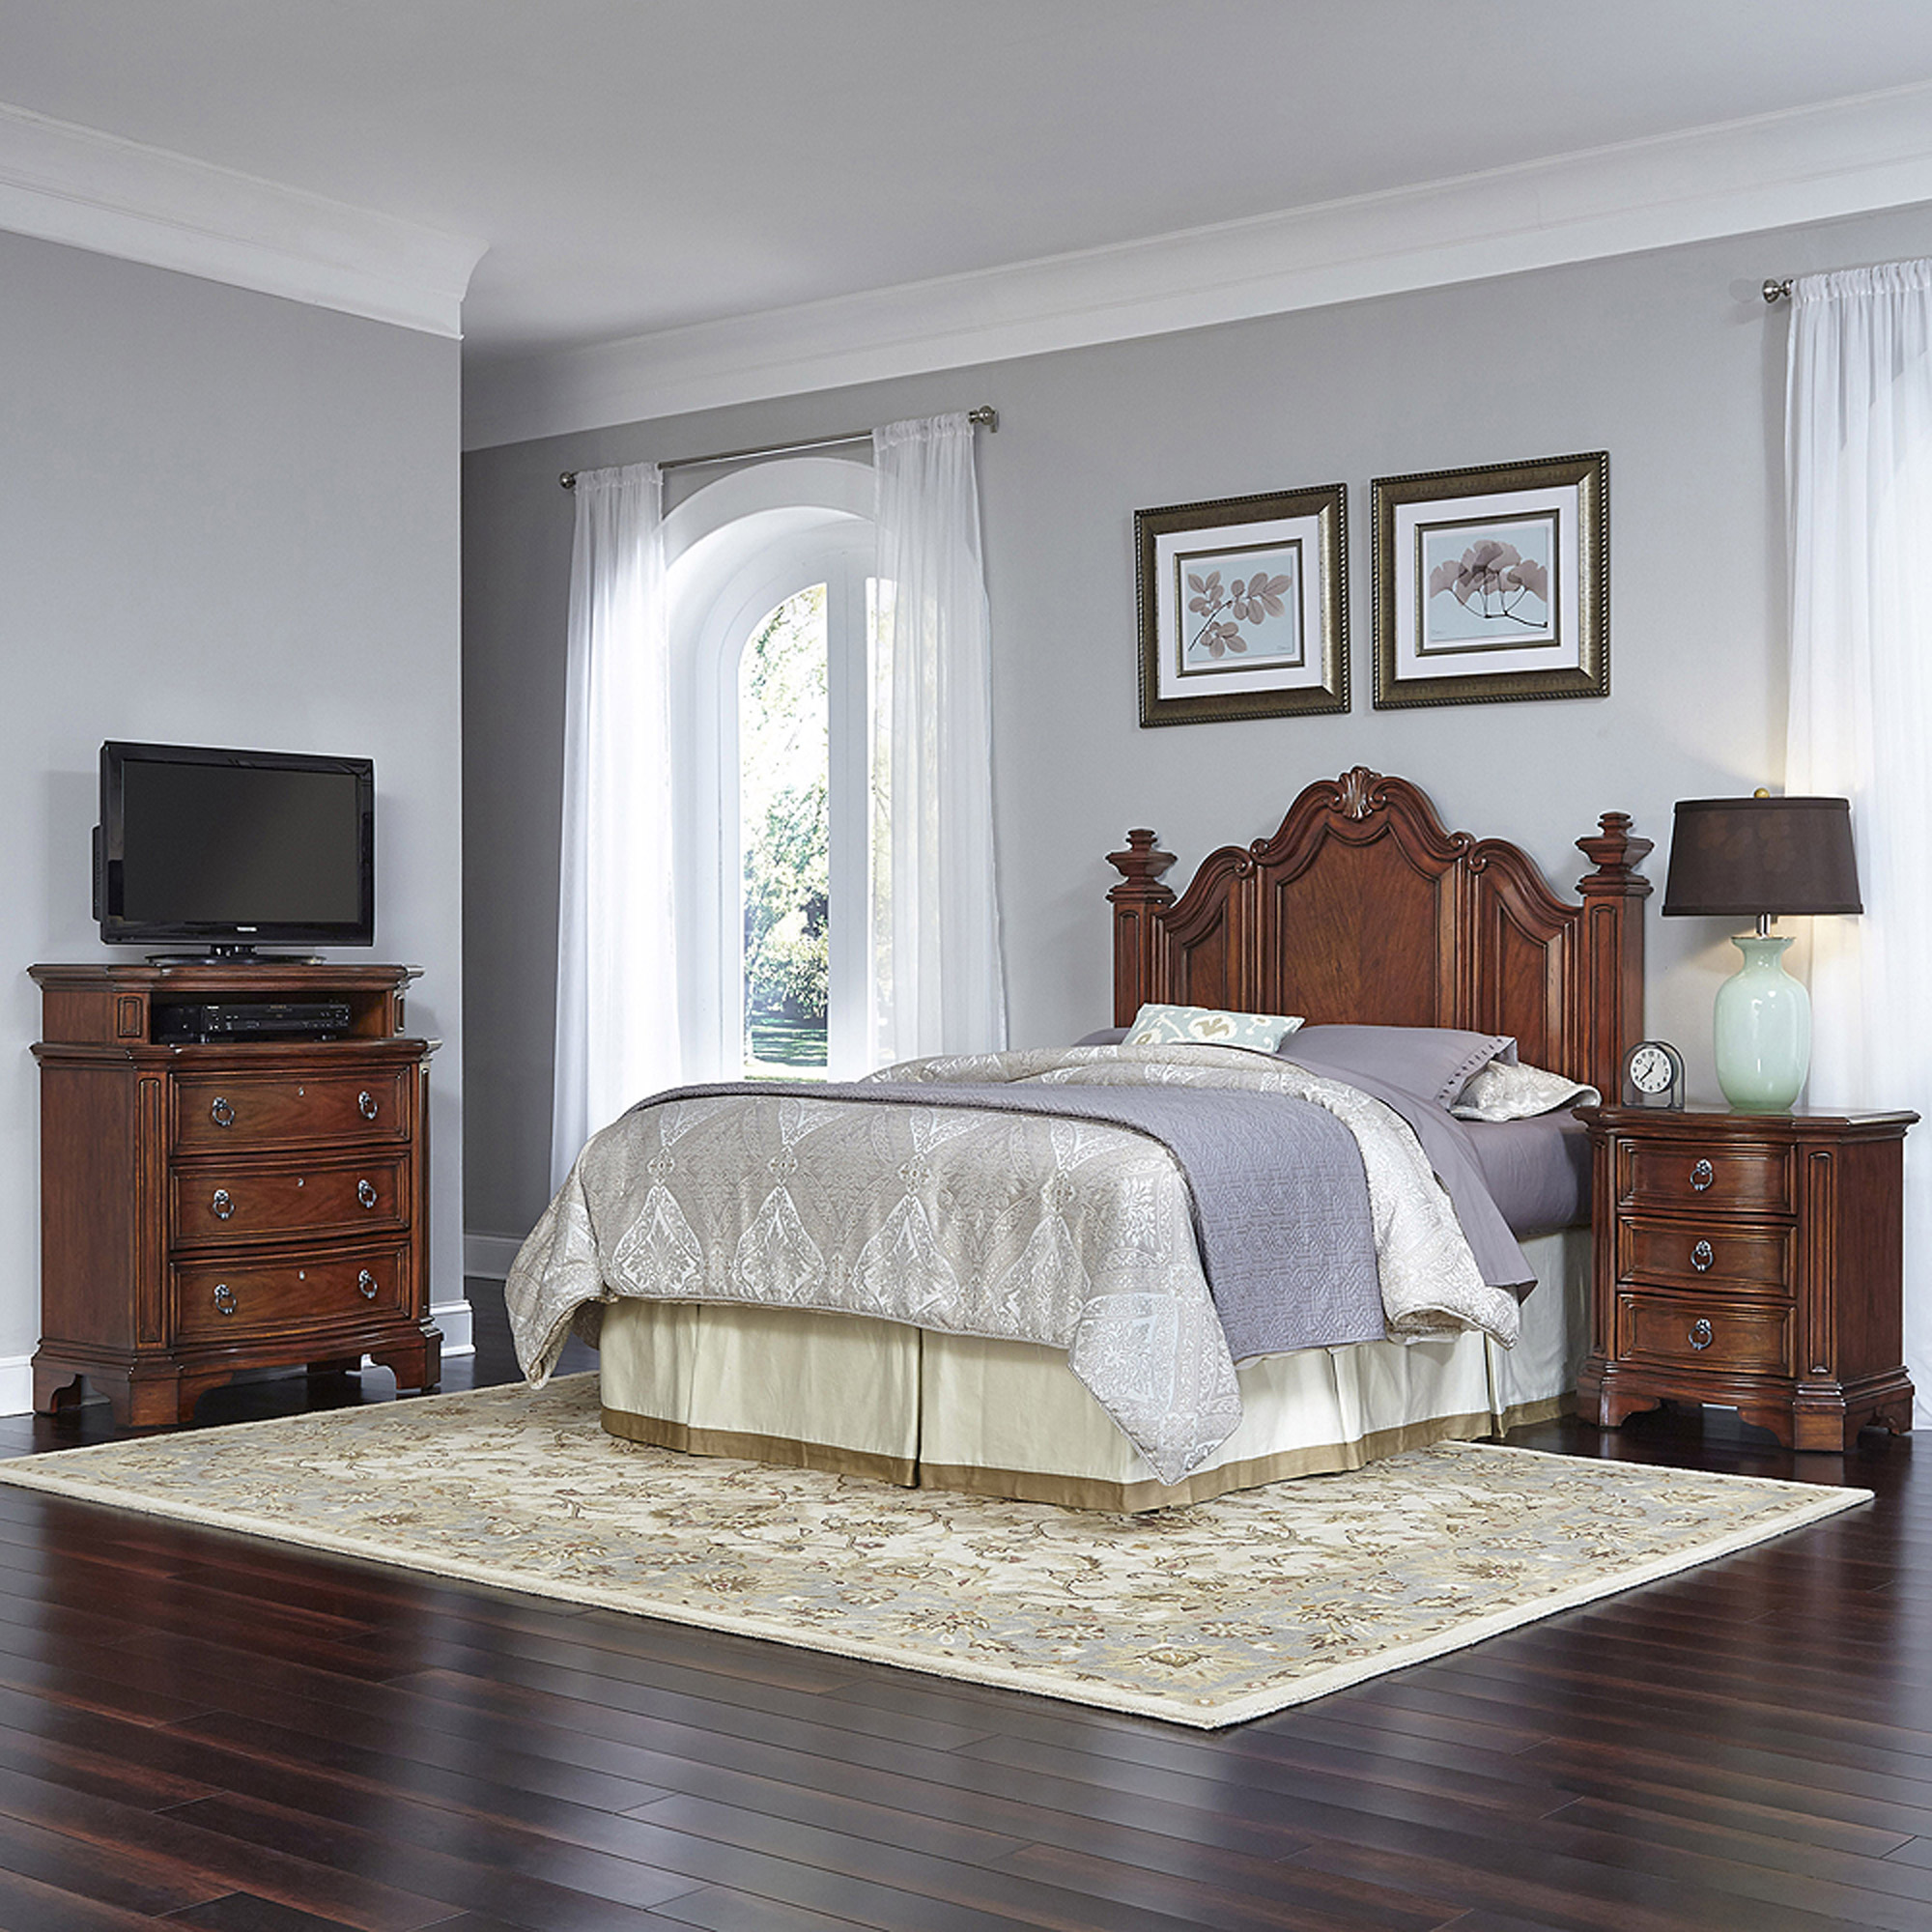 Home Styles Santiago Queen/Full Headboard, Night Stand and Media Chest